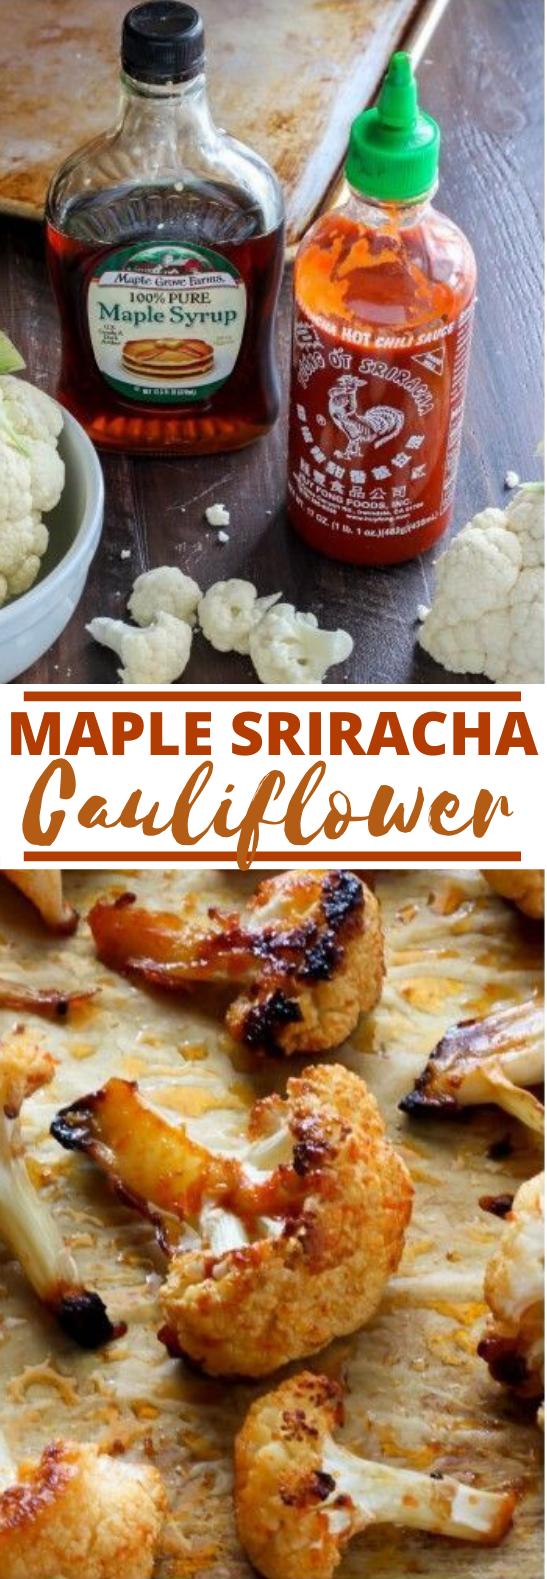 Maple Sriracha Roasted Cauliflower #vegan #recipes #cauliflower #sidedish #glutenfree